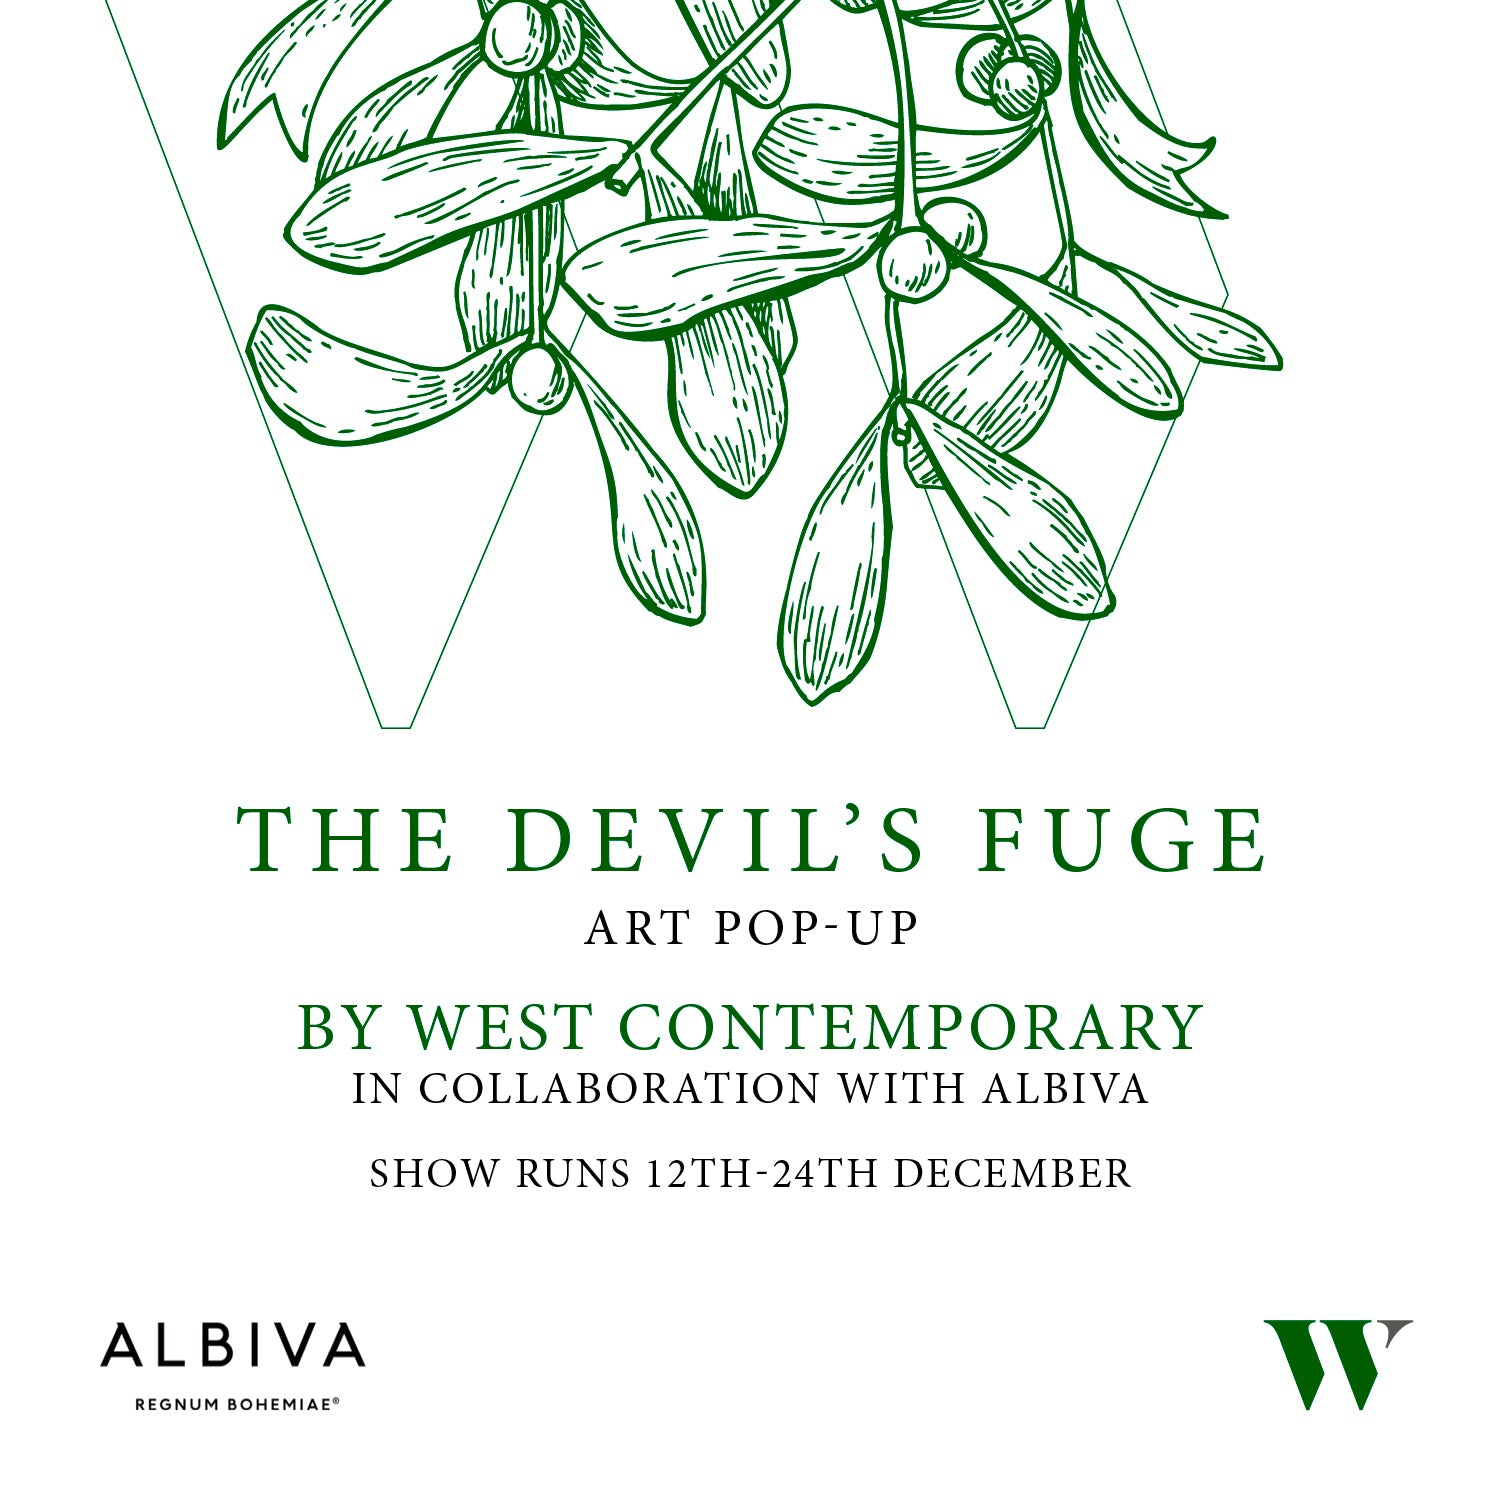 'THE DEVIL'S FUGE' ART POP-UP COLLABORATION